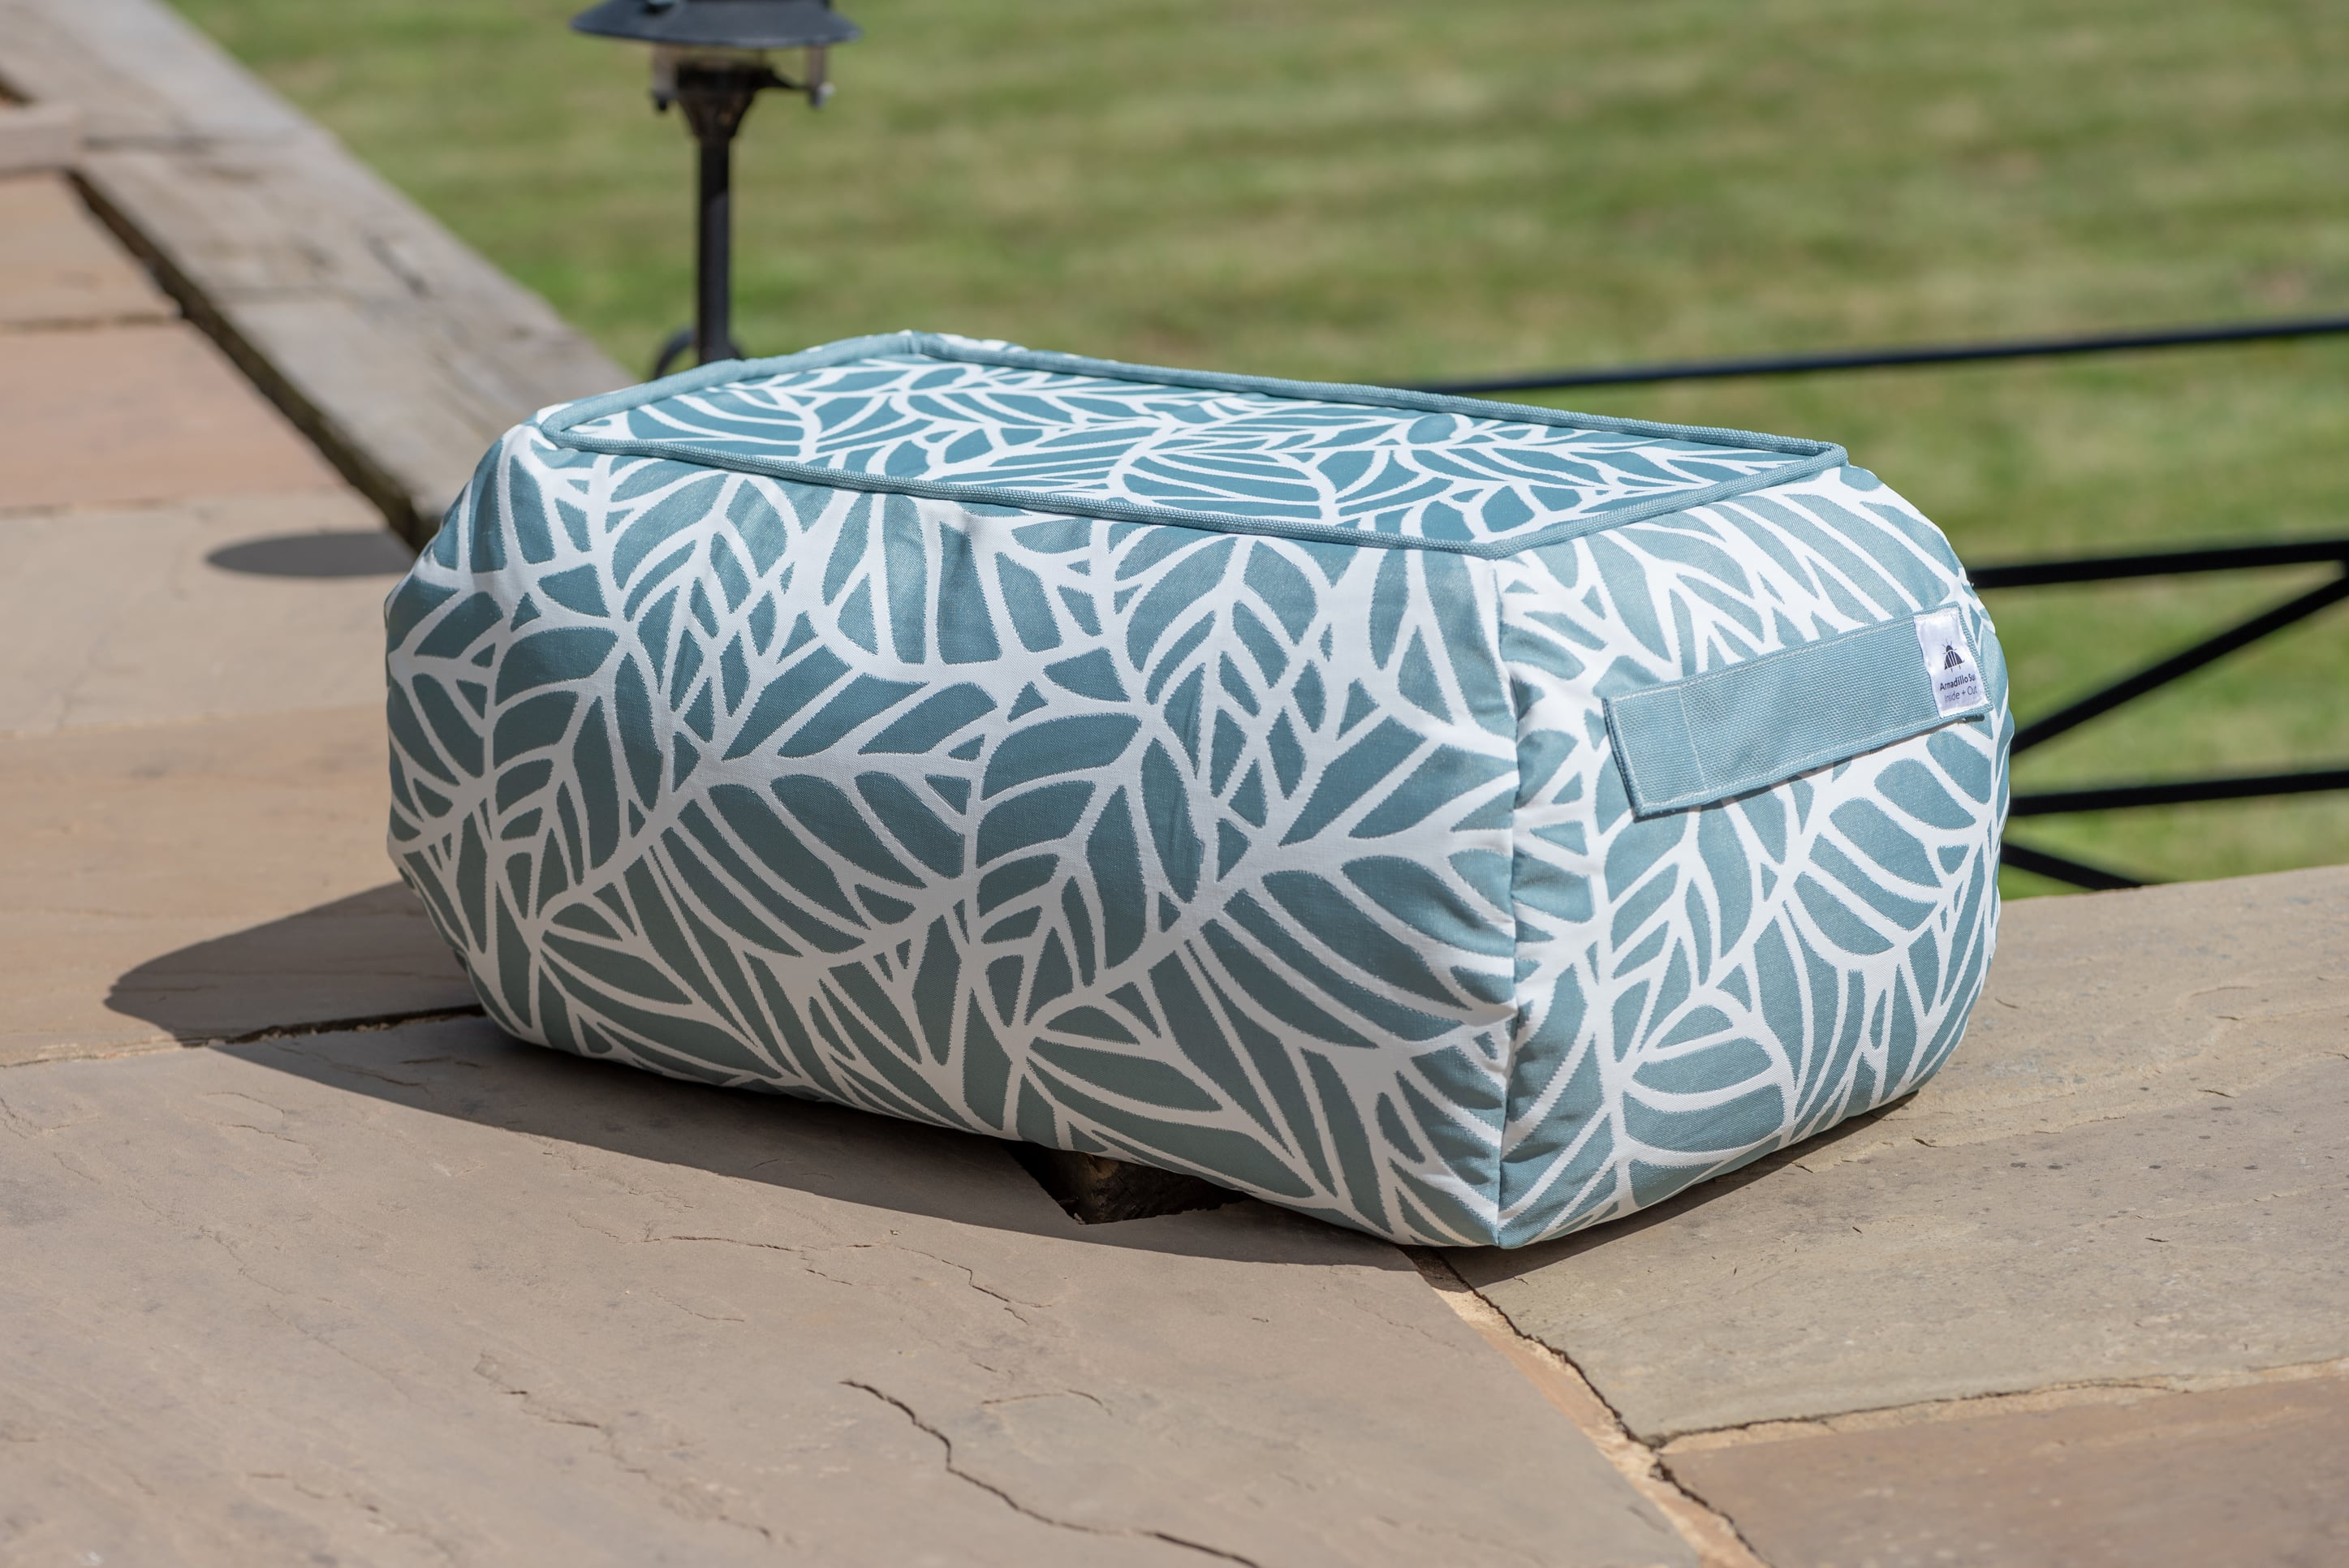 Armadillo Sun bean bag table in pale ocean blue and white palm pattern